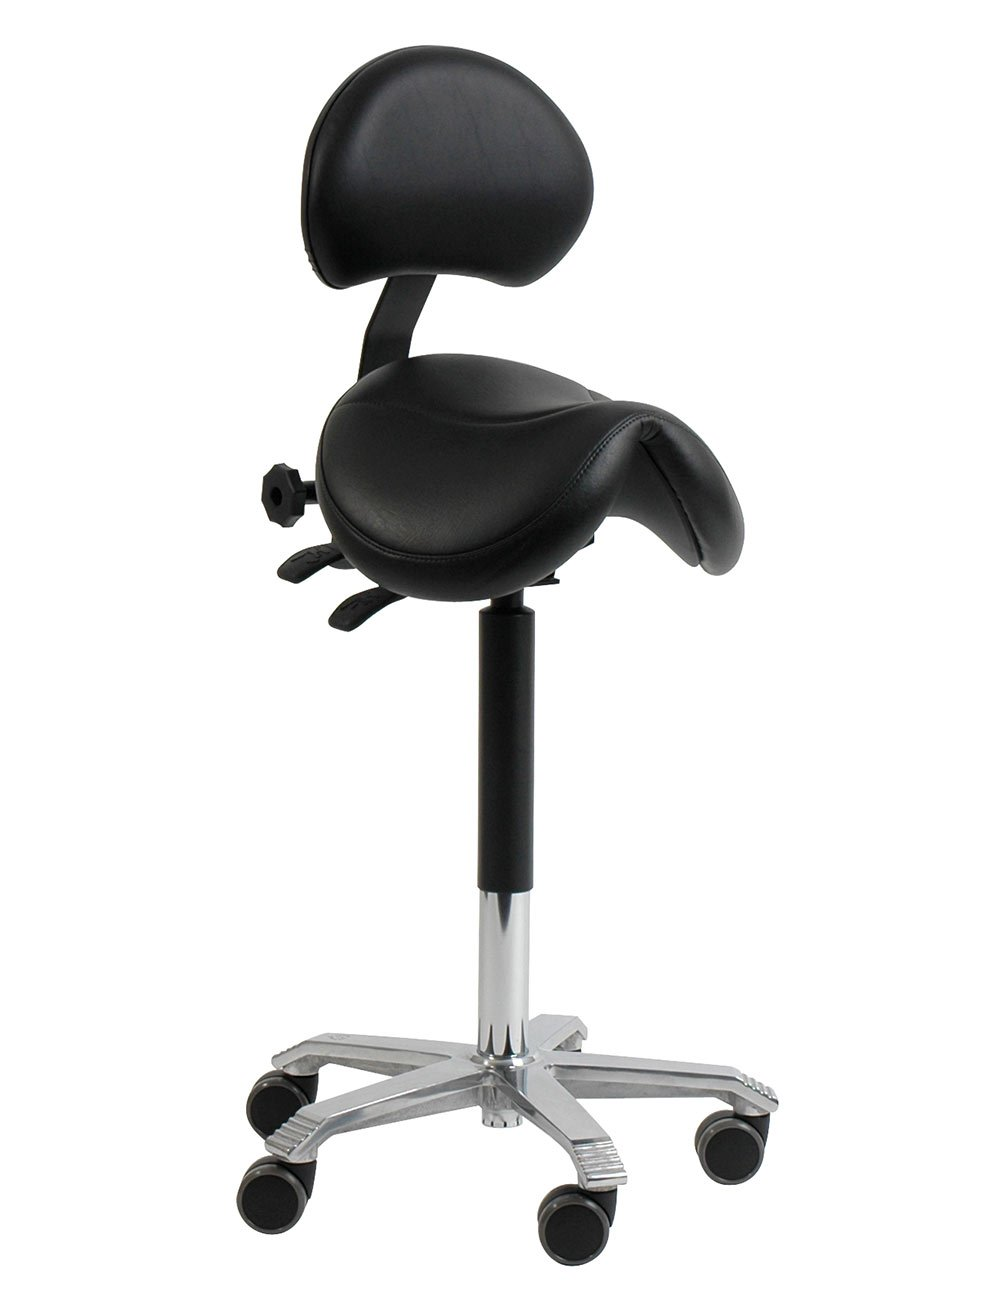 Score Jumper Saddle Stool Online Ergonomics